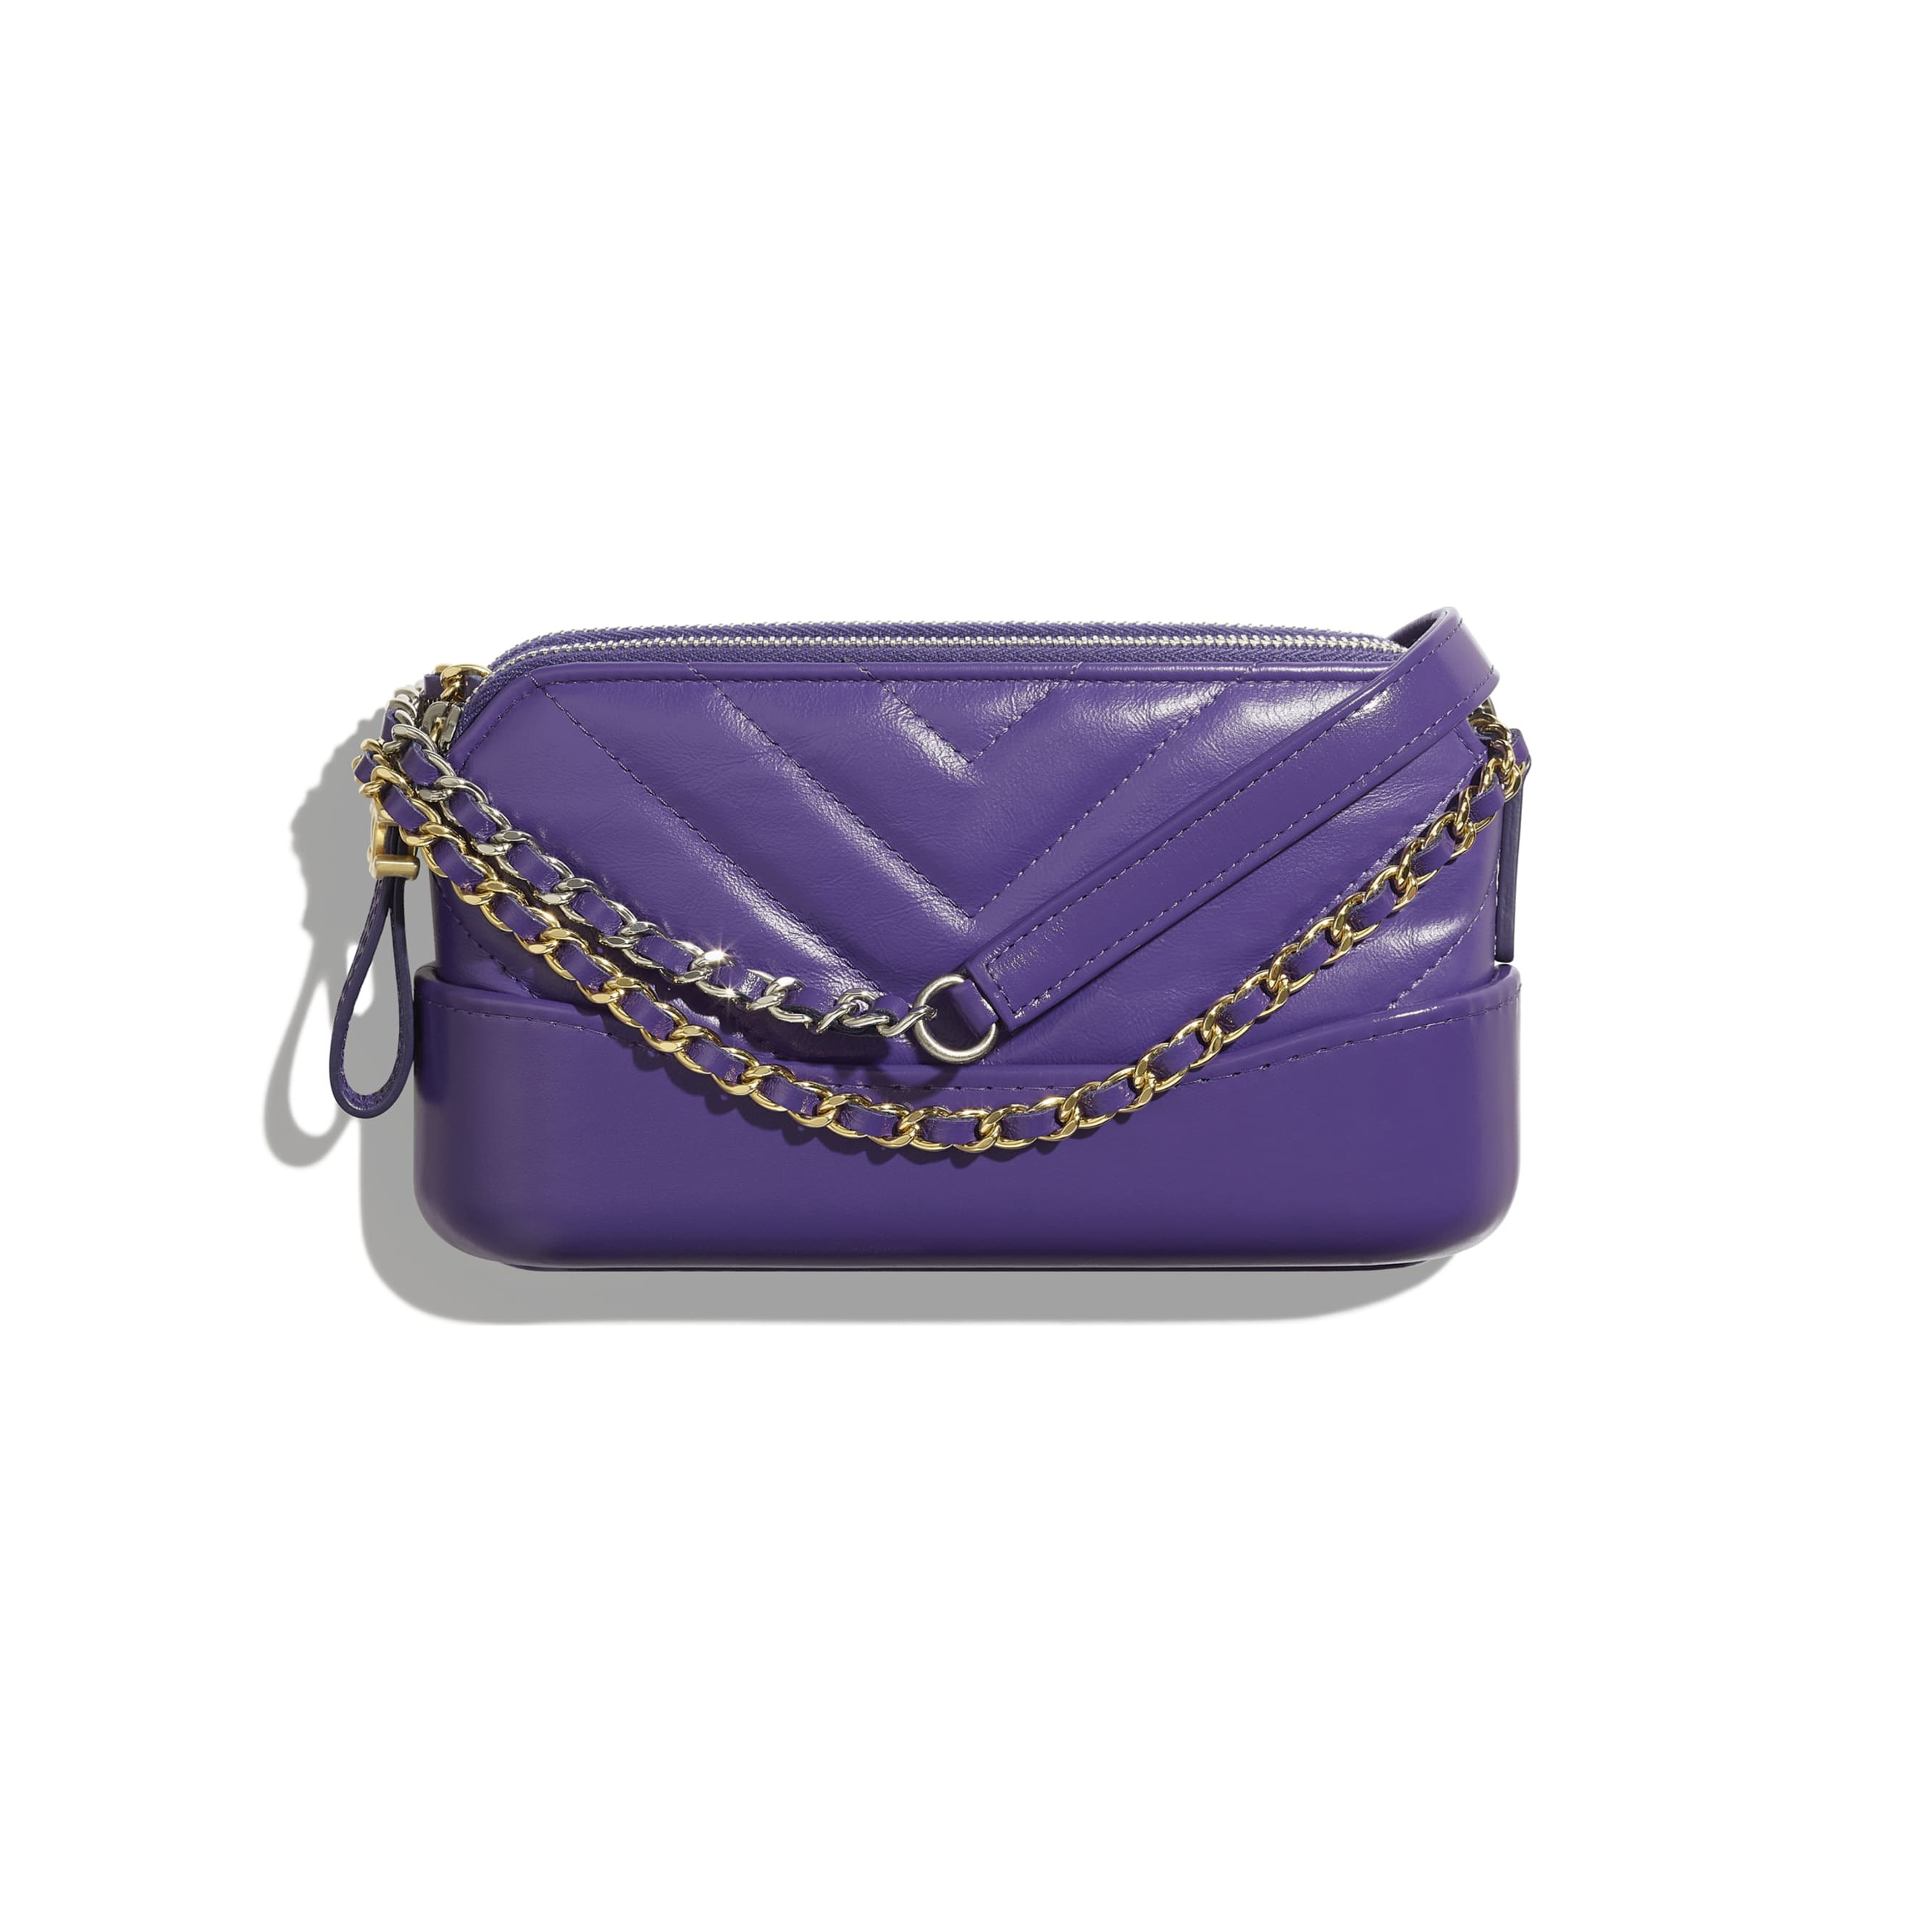 Clutch With Chain - Purple - Aged Calfskin, Smooth Calfskin, Gold-Tone & Silver-Tone Metal - Default view - see standard sized version